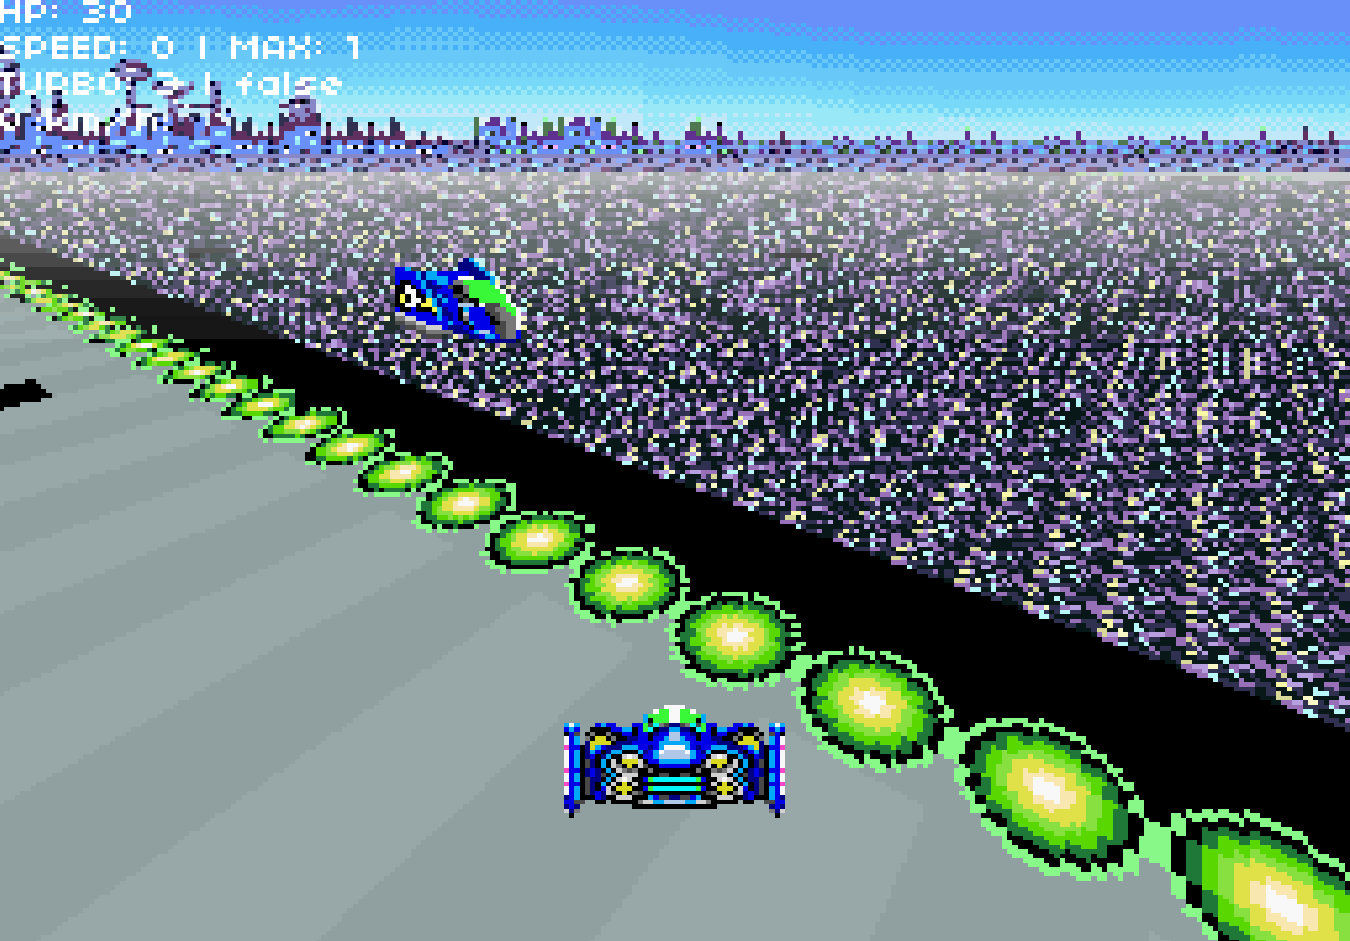 A game with graphics of a Super Nintendo game.